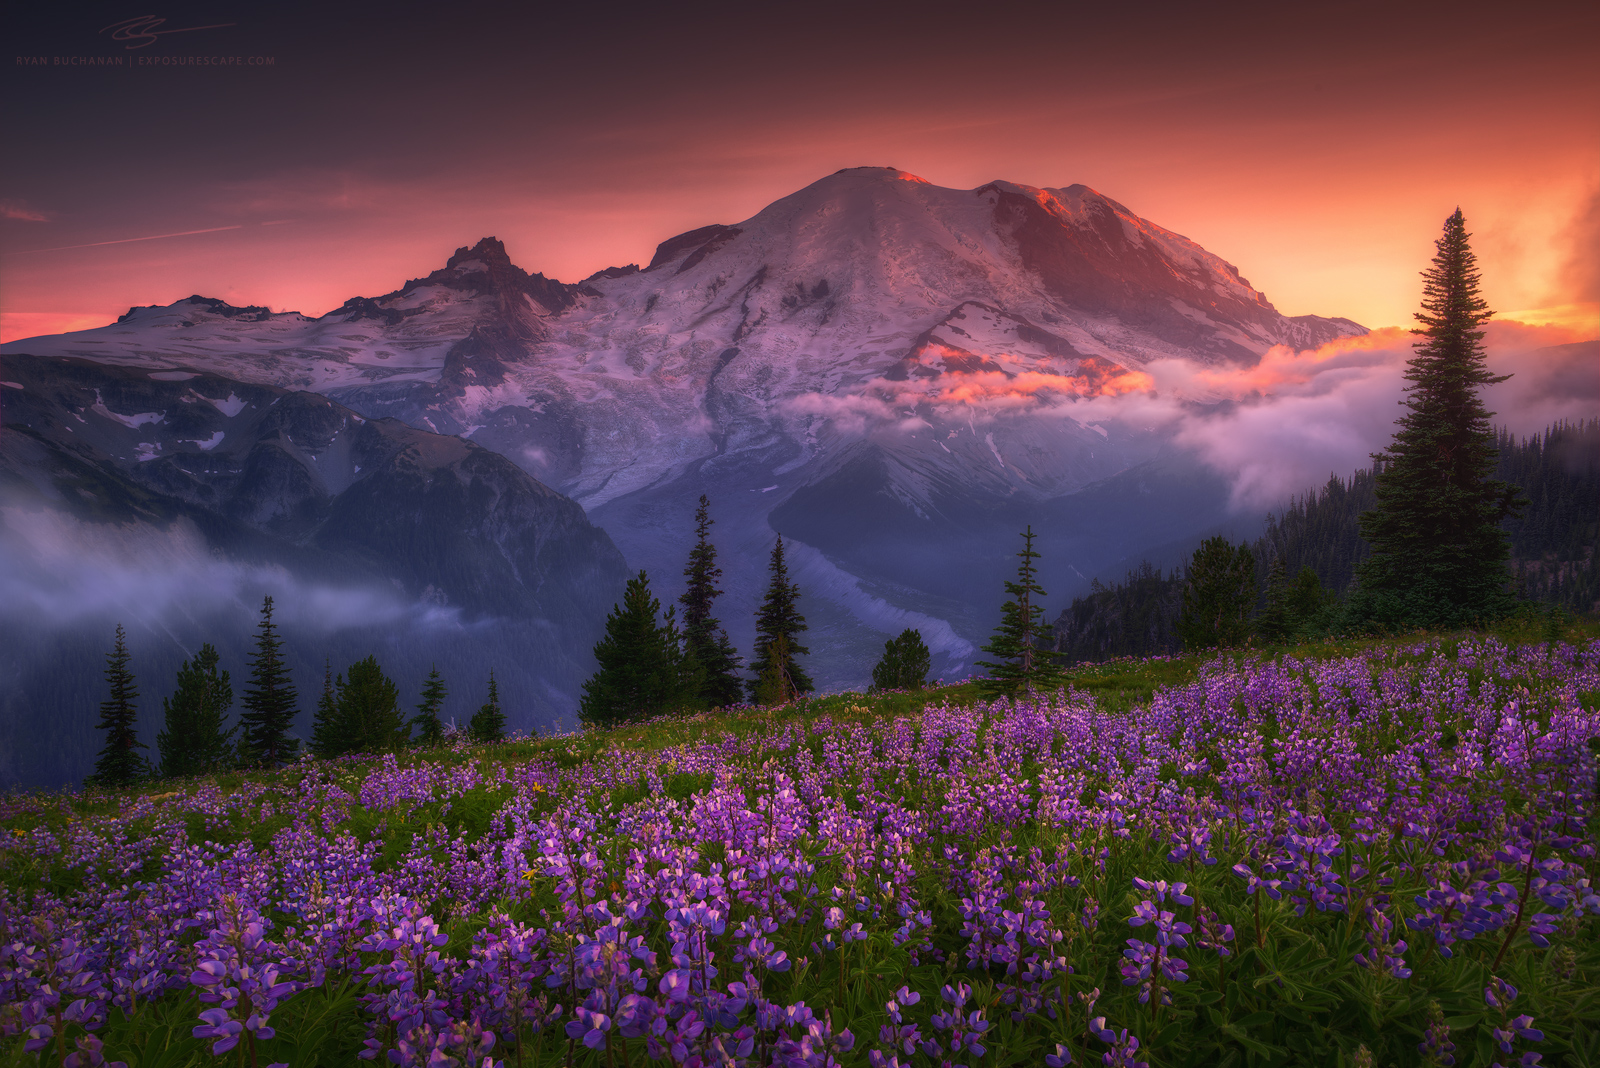 Sunrise, Mount Rainier at sunset during peak flower bloom